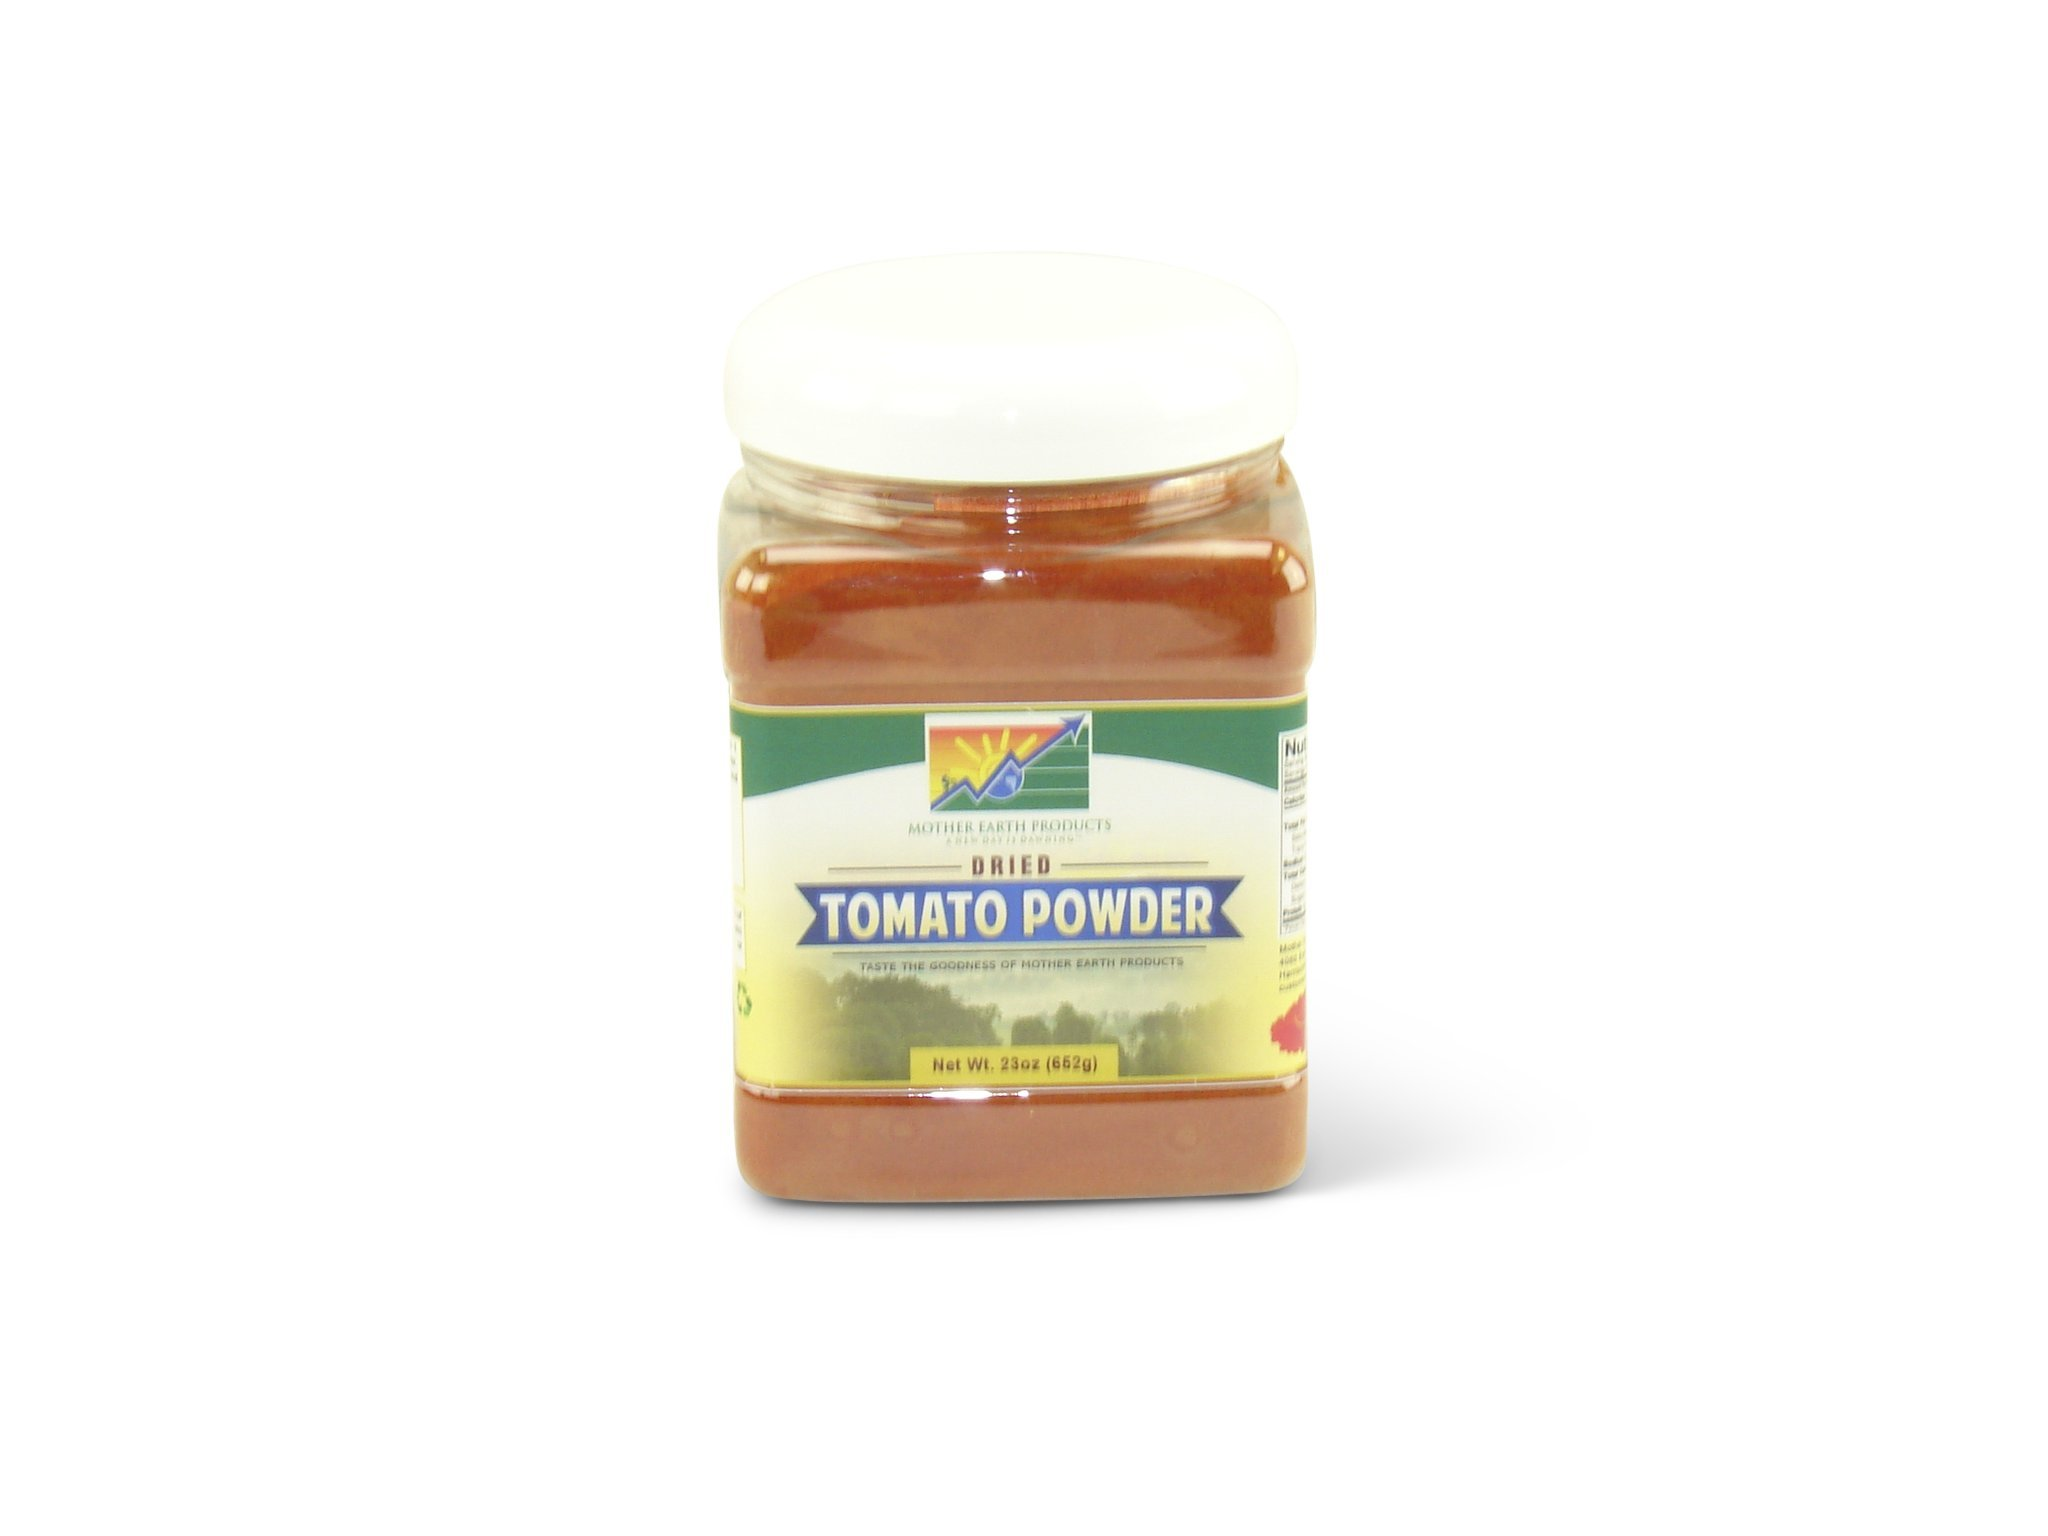 Mother Earth Products Dried Tomato Powder, Quart Jar